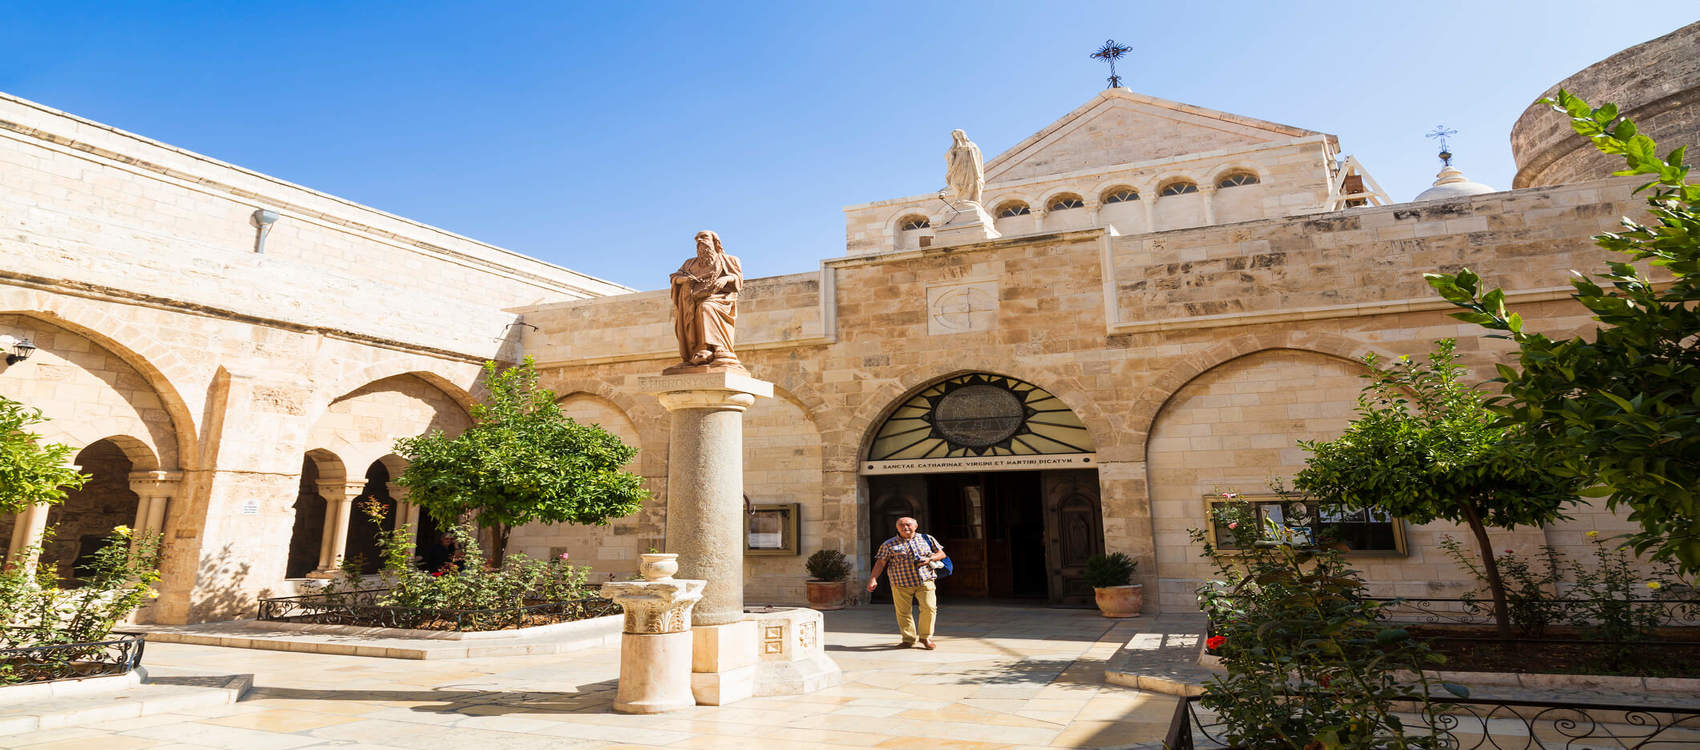 From Eilat: Jerusalem, Bethlehem and Dead Sea Tour $79.00